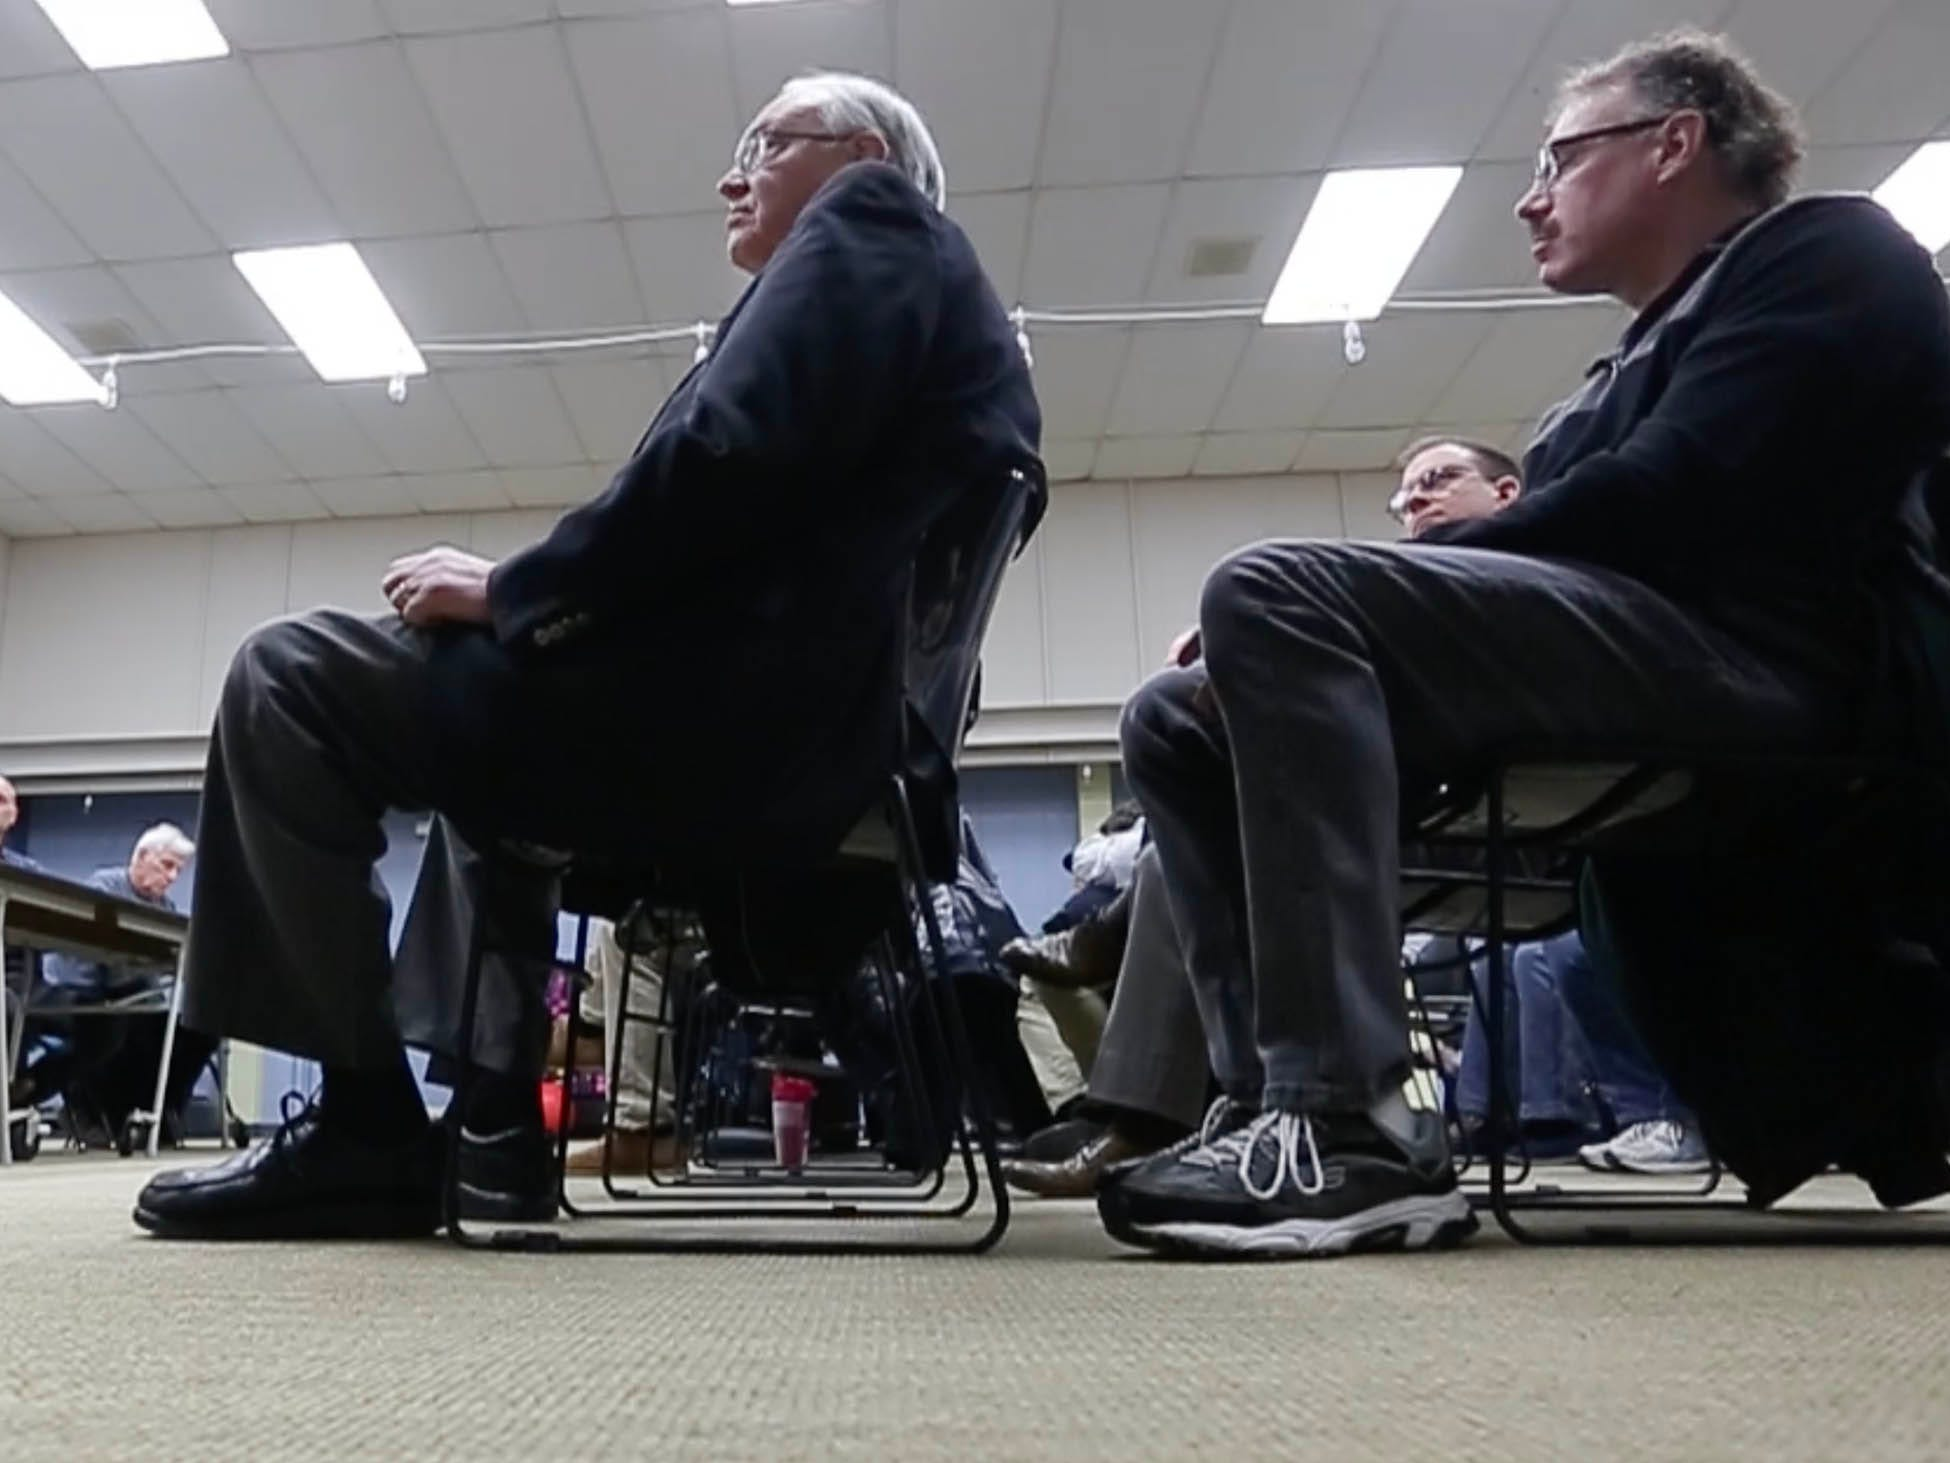 An overall at the Senior Activity Center during a Historic Preservation Commission meeting, Tuesday, March 19, 2019, in Sheboygan, Wis.